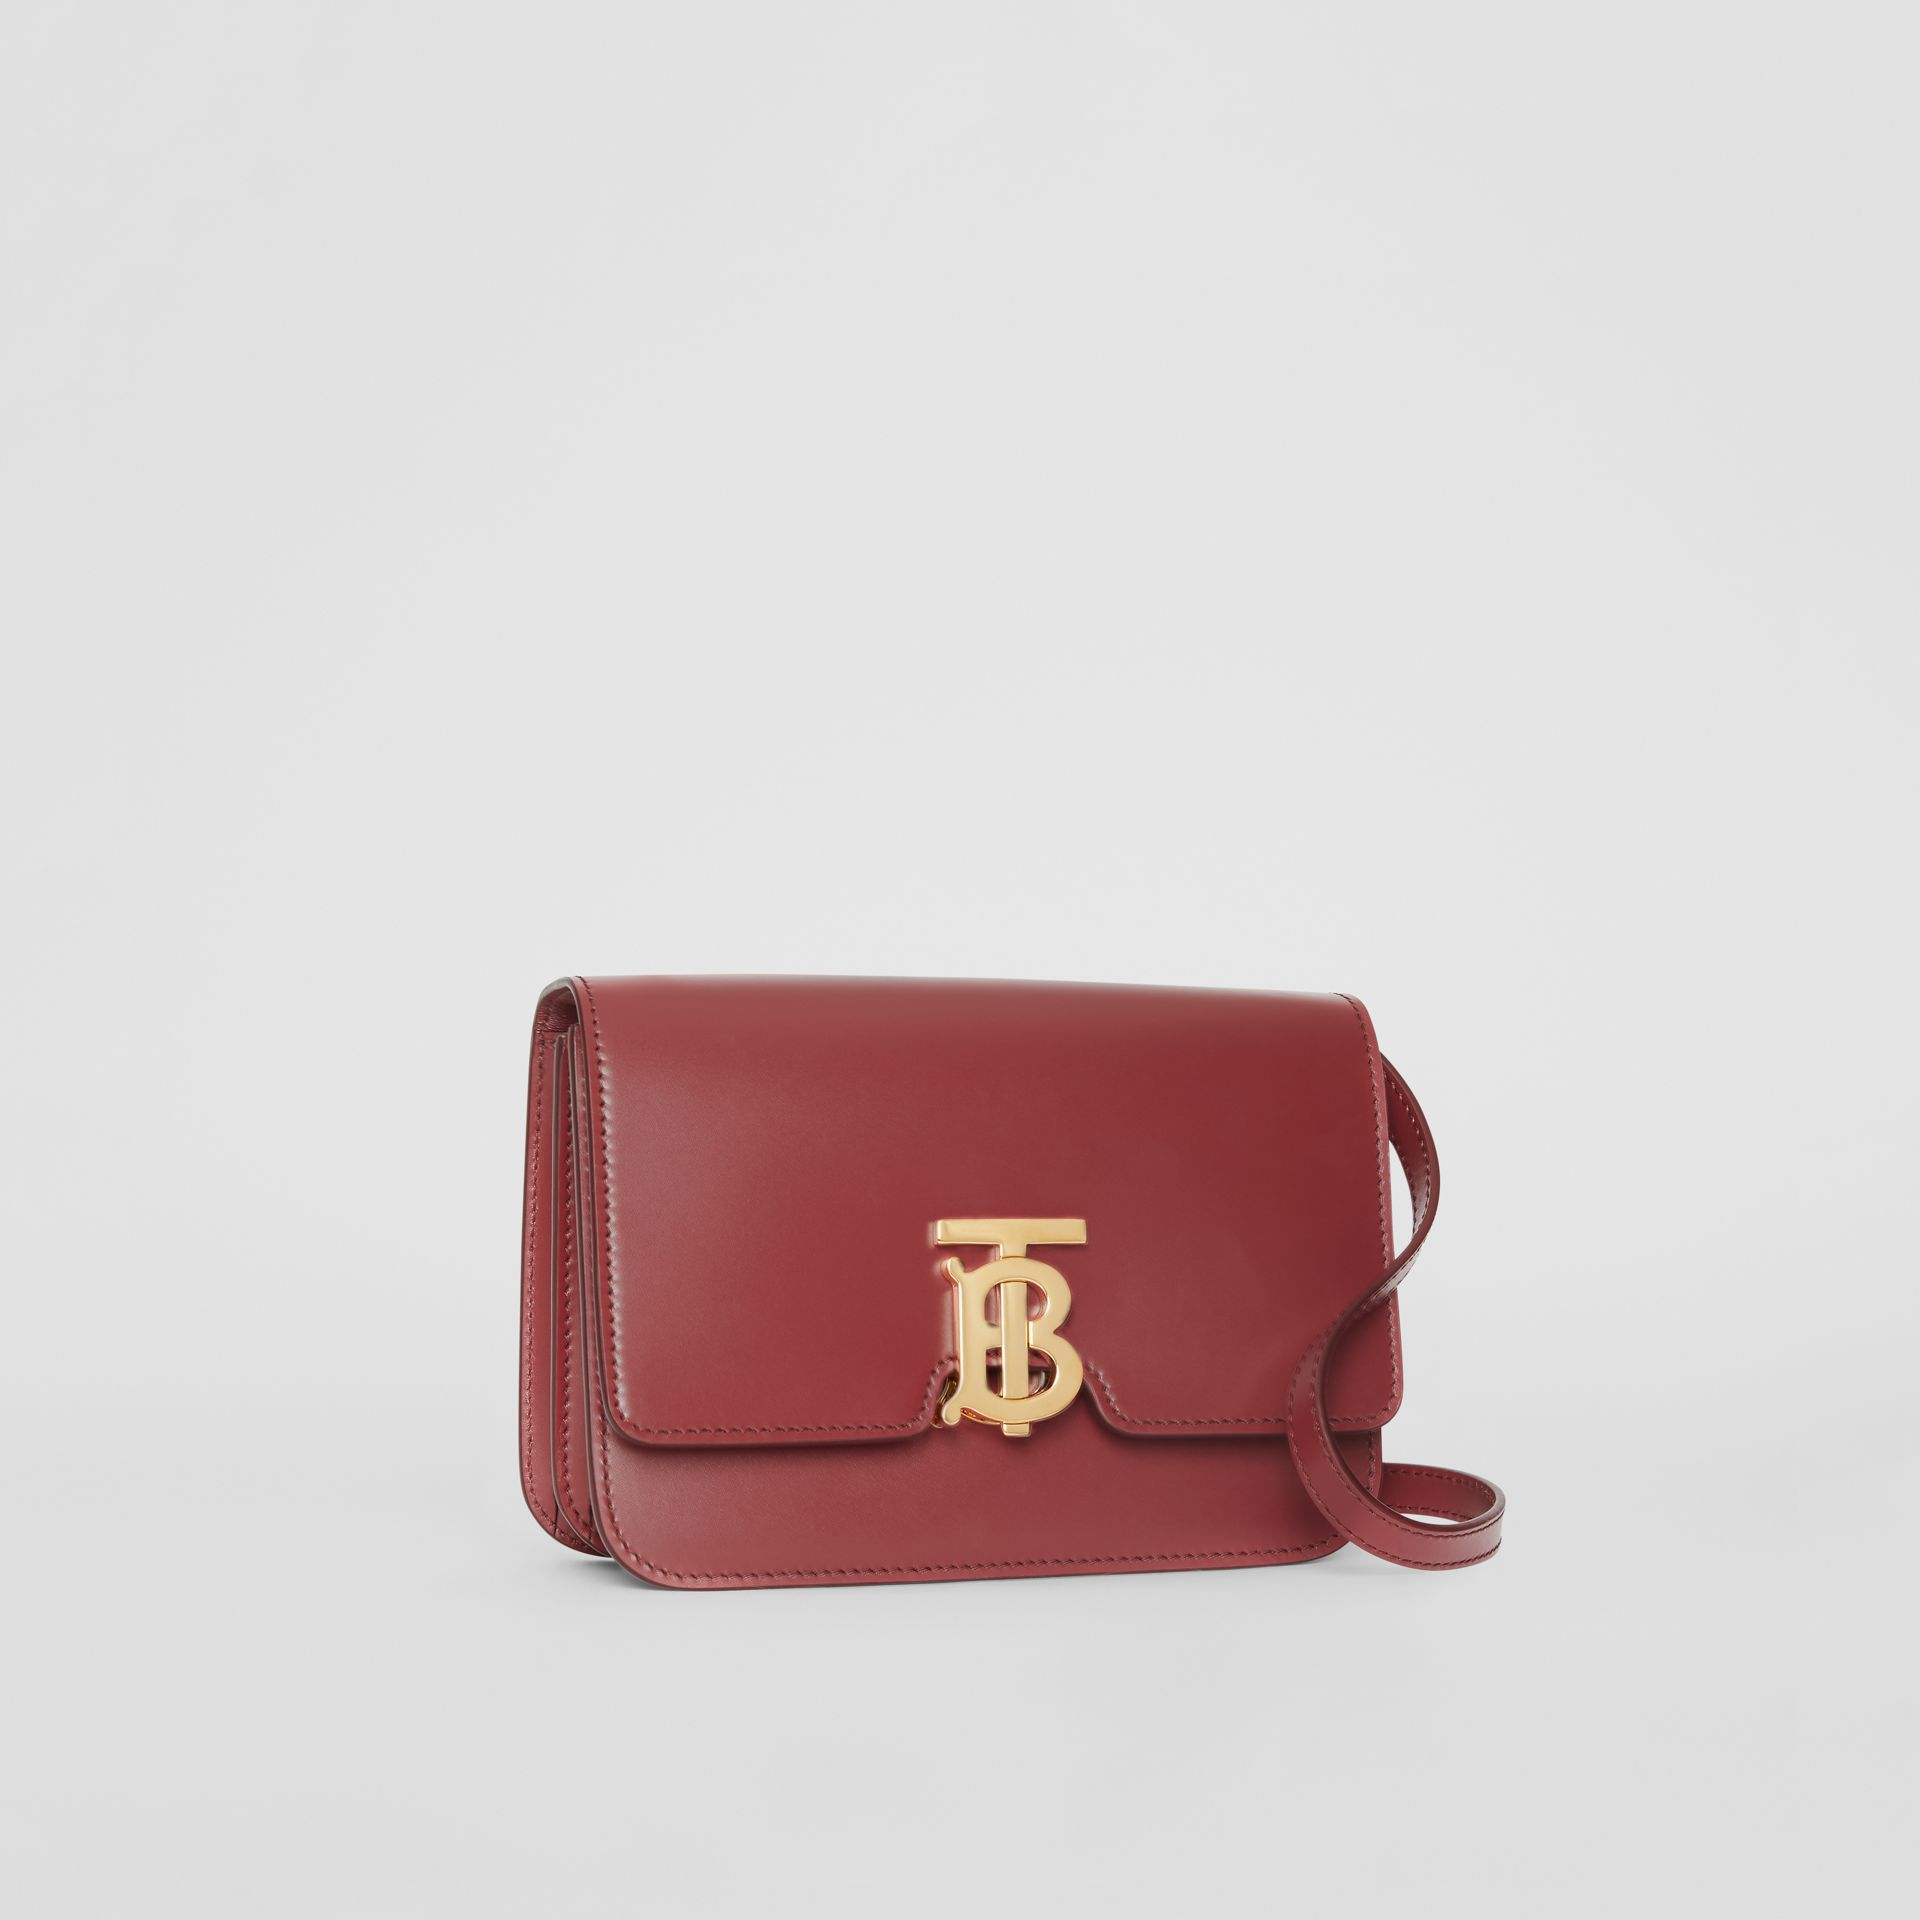 Small Leather TB Bag in Crimson - Women | Burberry - gallery image 4